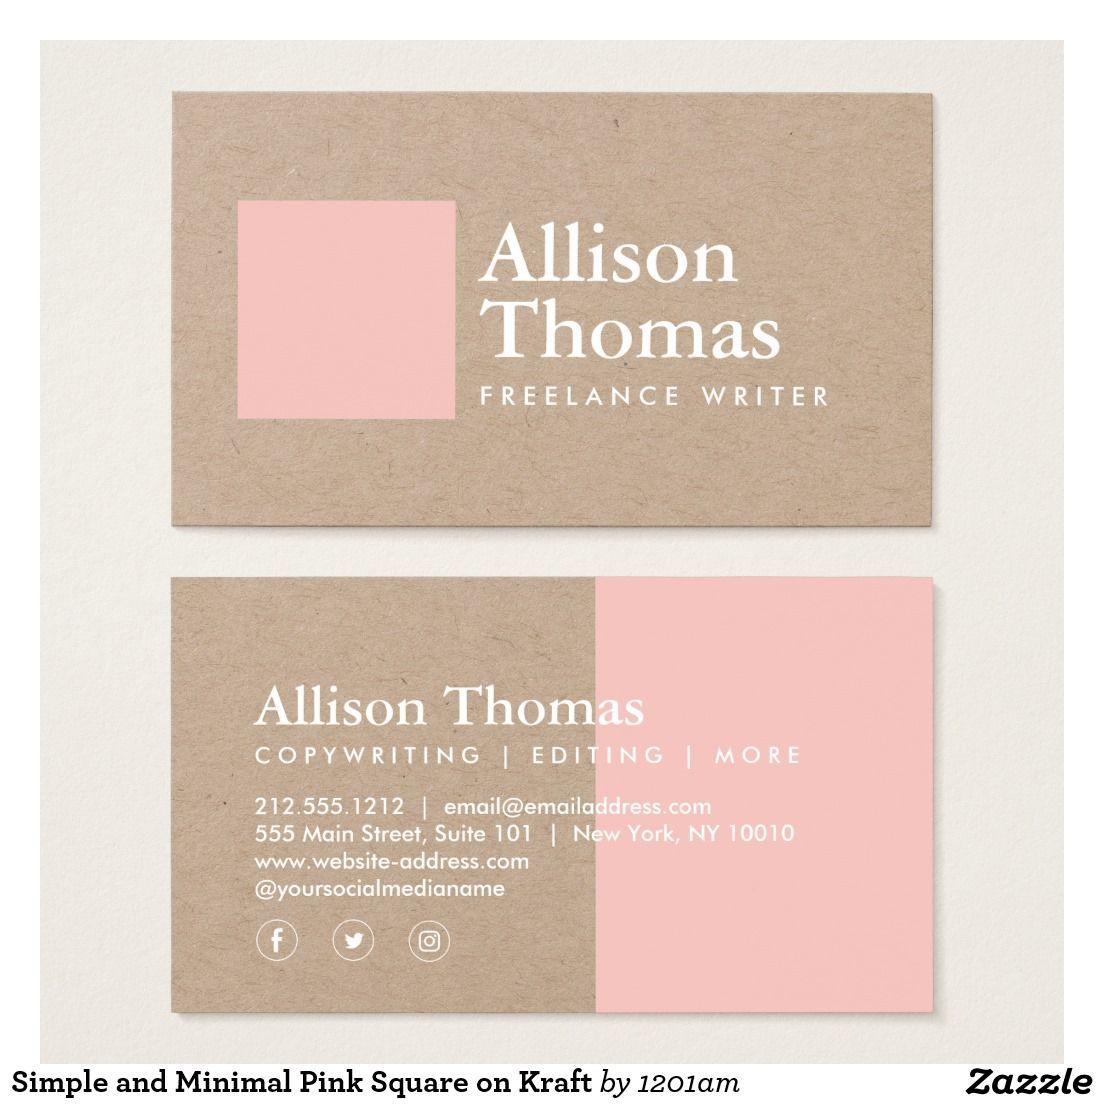 Minimalist pink square and white ink on kraft paper business card minimalist pink square and white ink on kraft paper business card fully customizable great reheart Image collections